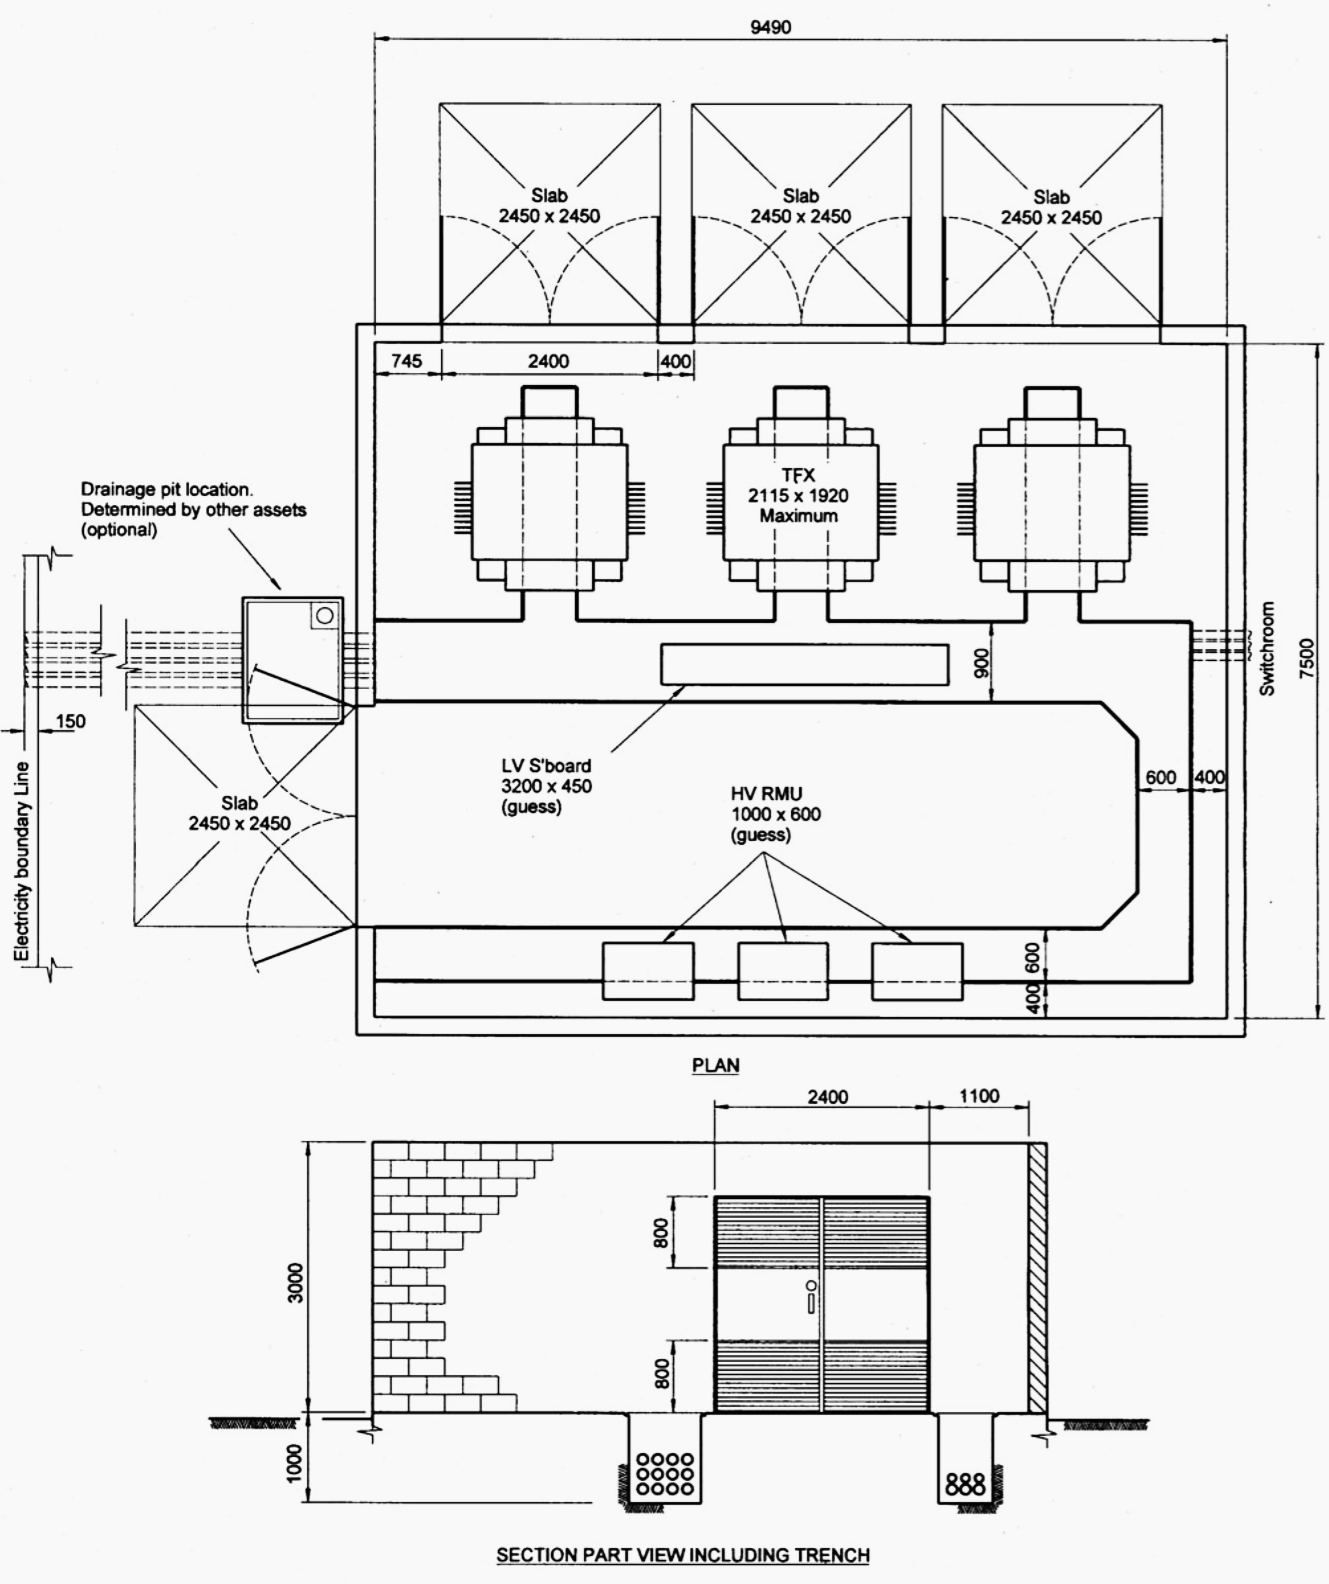 Indoor distribution substation layout with 3 transformers for Substation design pdf